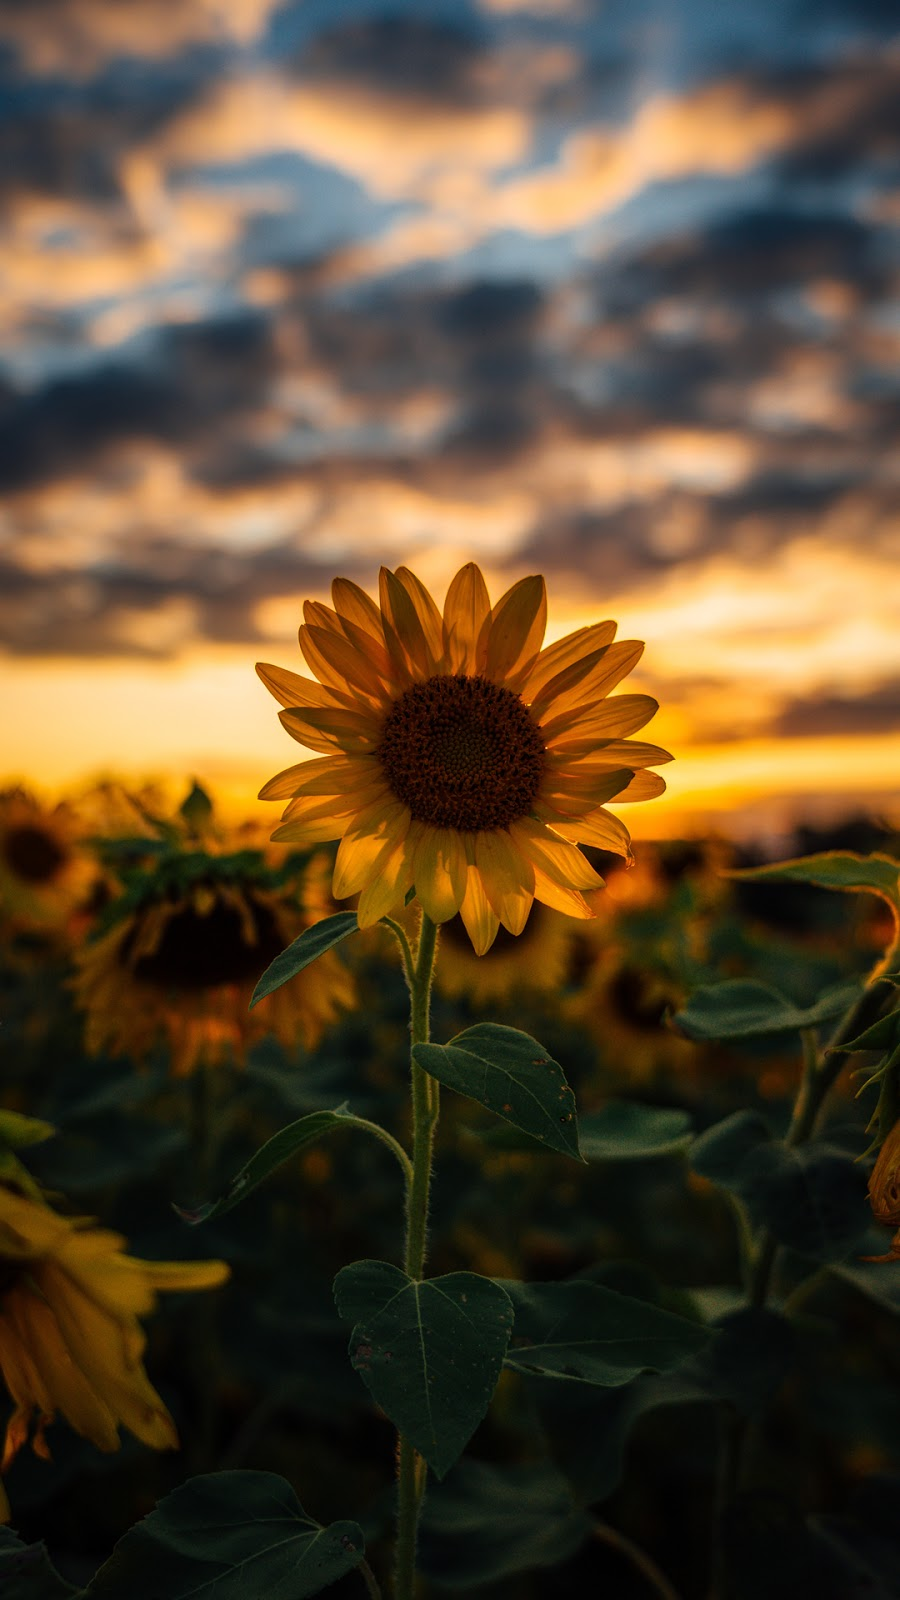 Sunflower wallpaper android